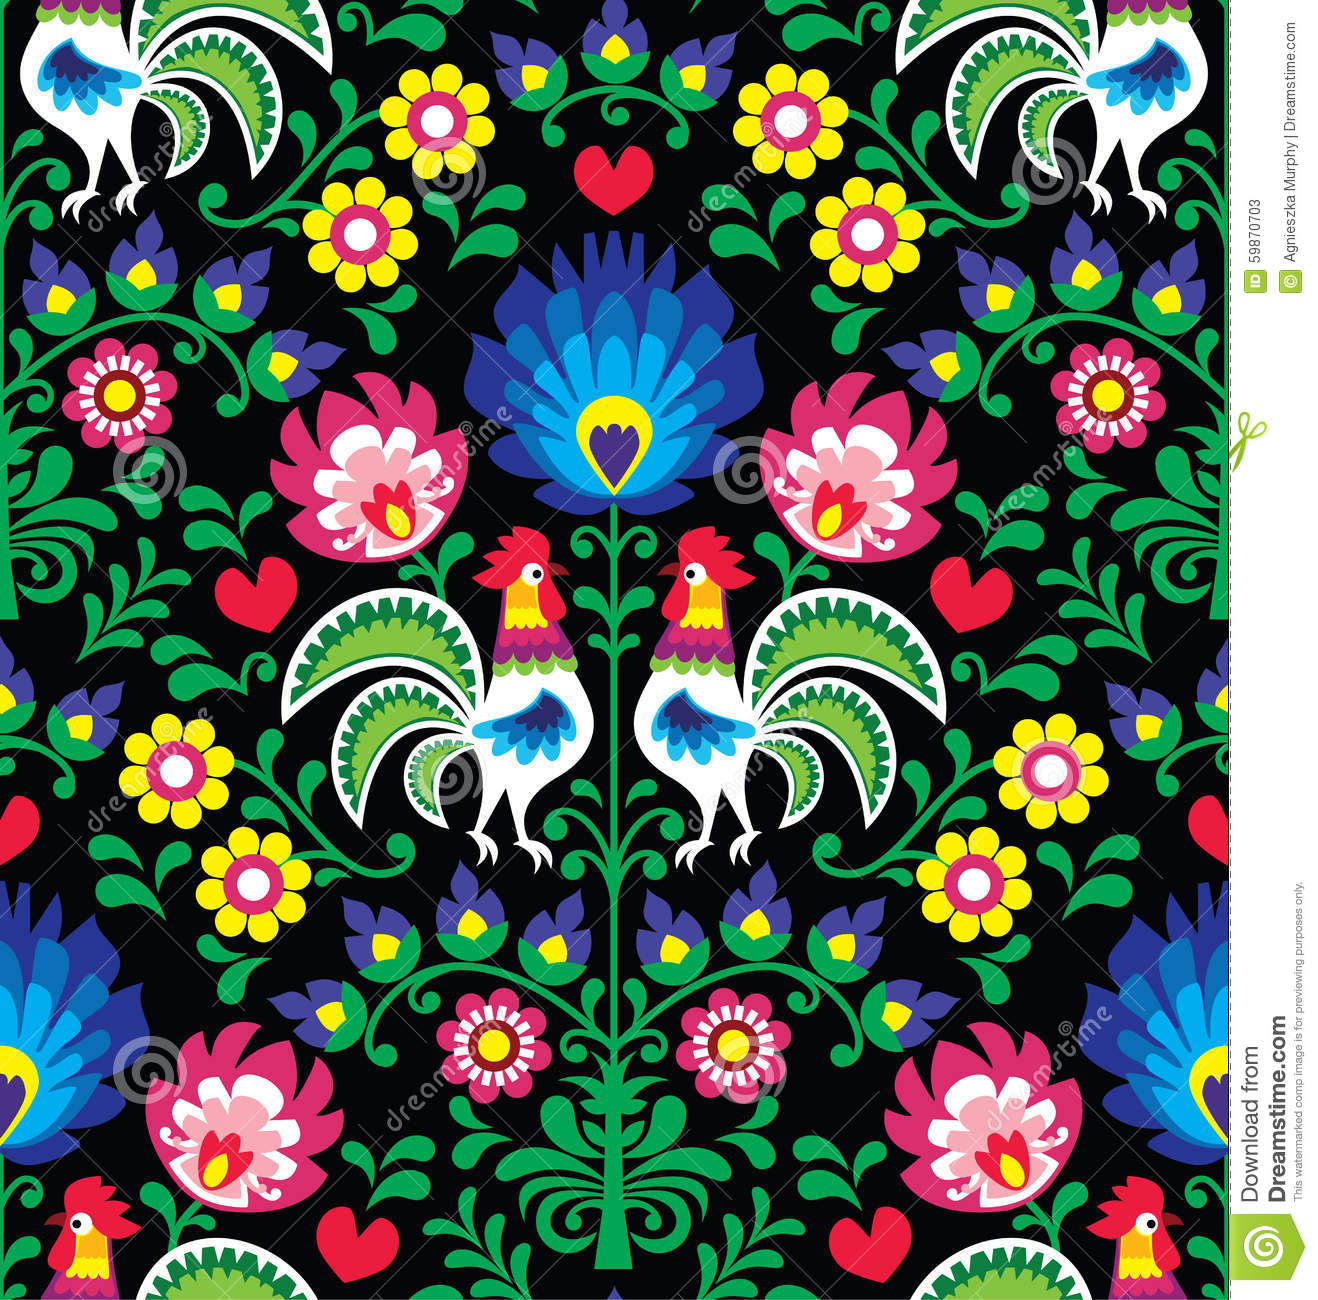 Print Embroidery Designs